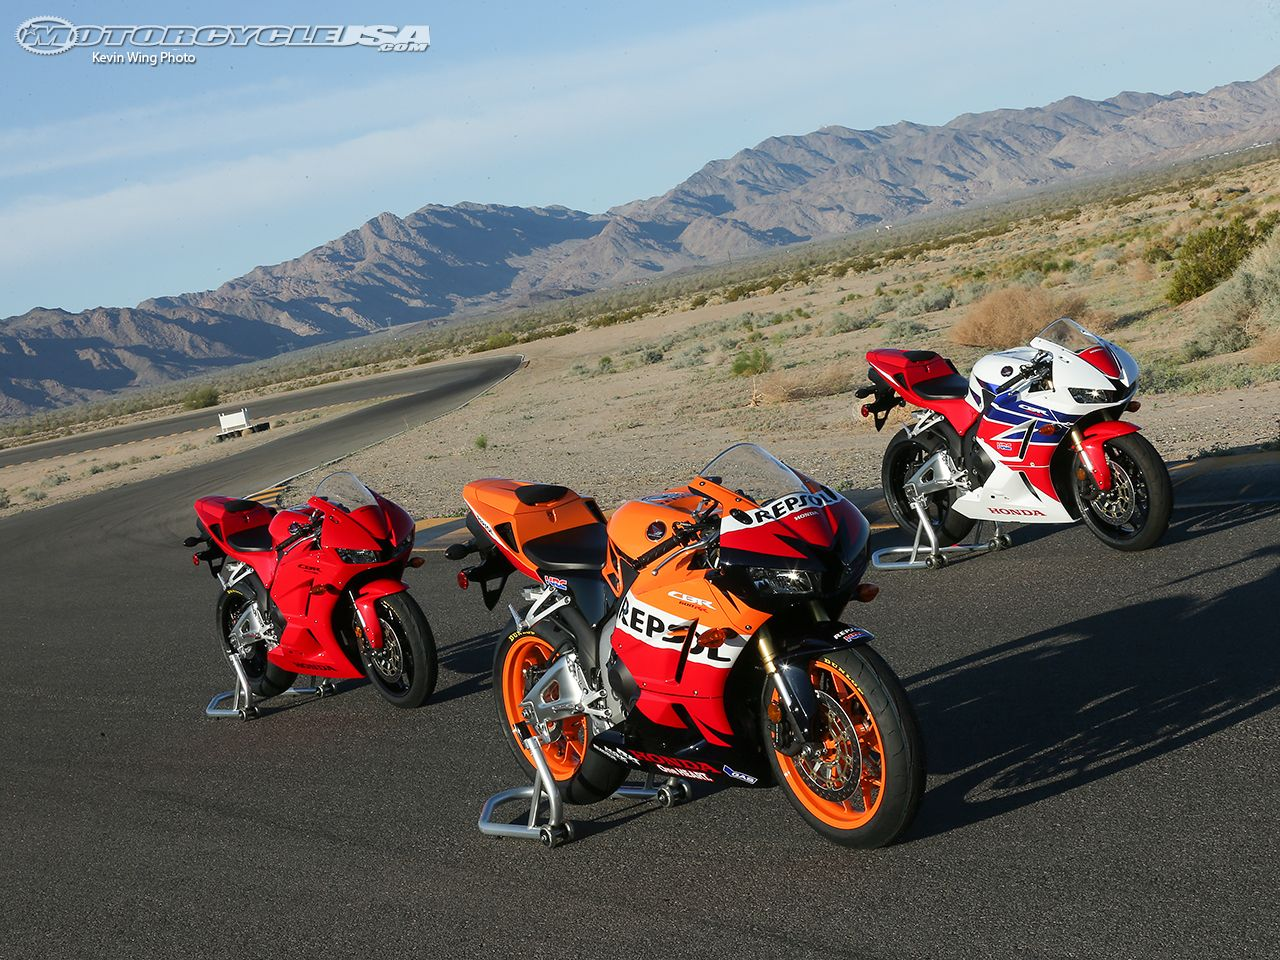 Honda cbr 2014 sports super sports bike photo - Find This Pin And More On Sport Bikes By Motorcycleusa